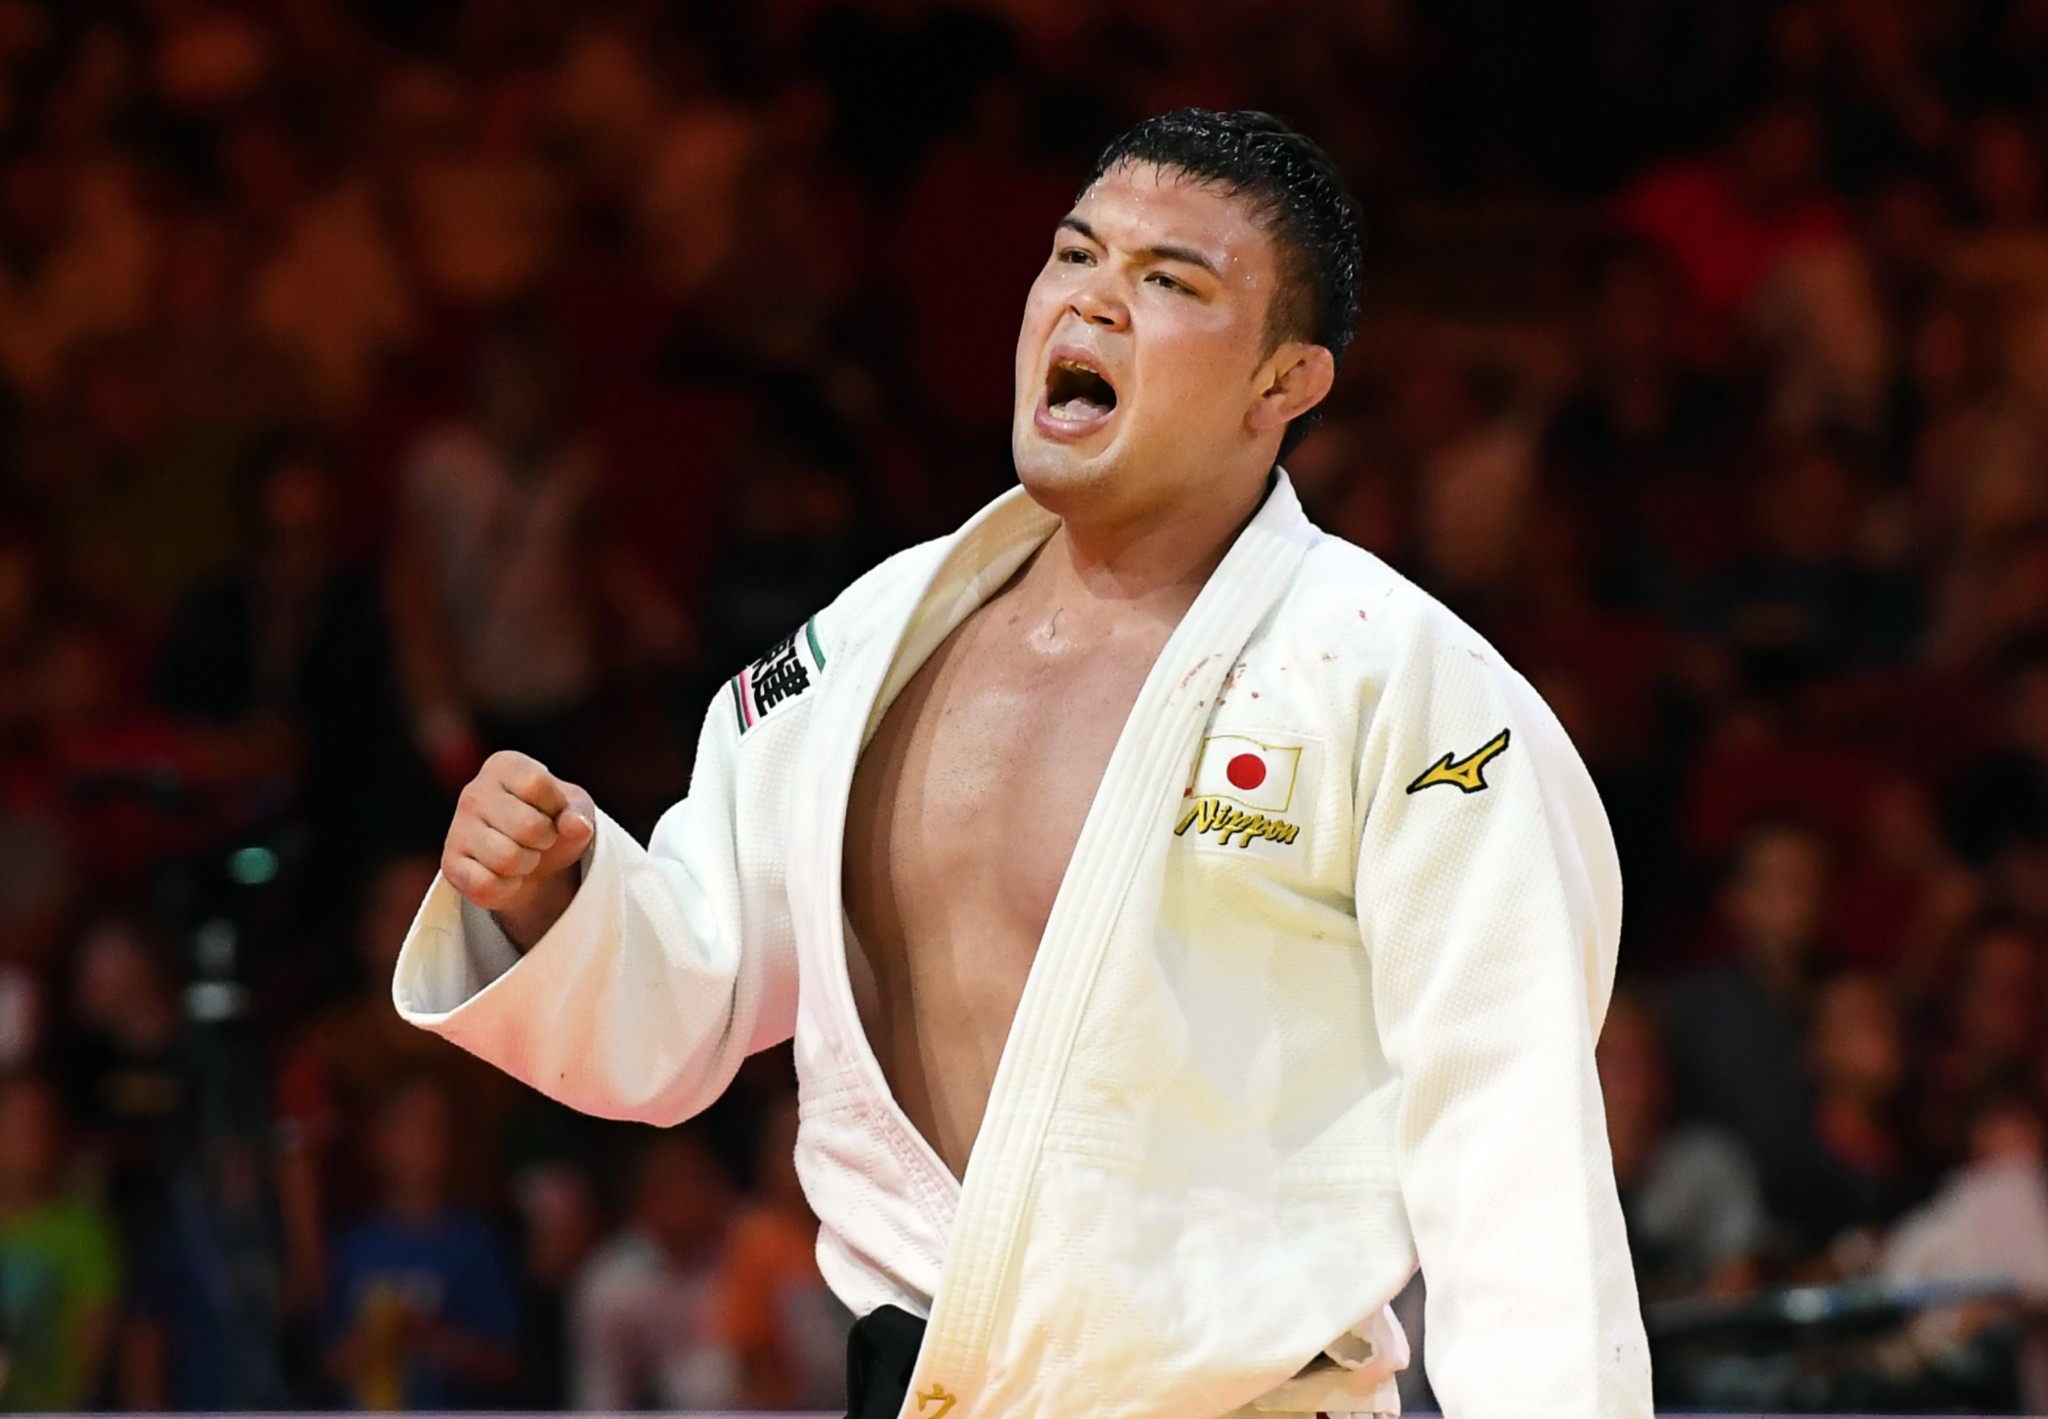 Wolf roars to claim seventh Japanese gold medal as Yu defends title at IJF World Championships